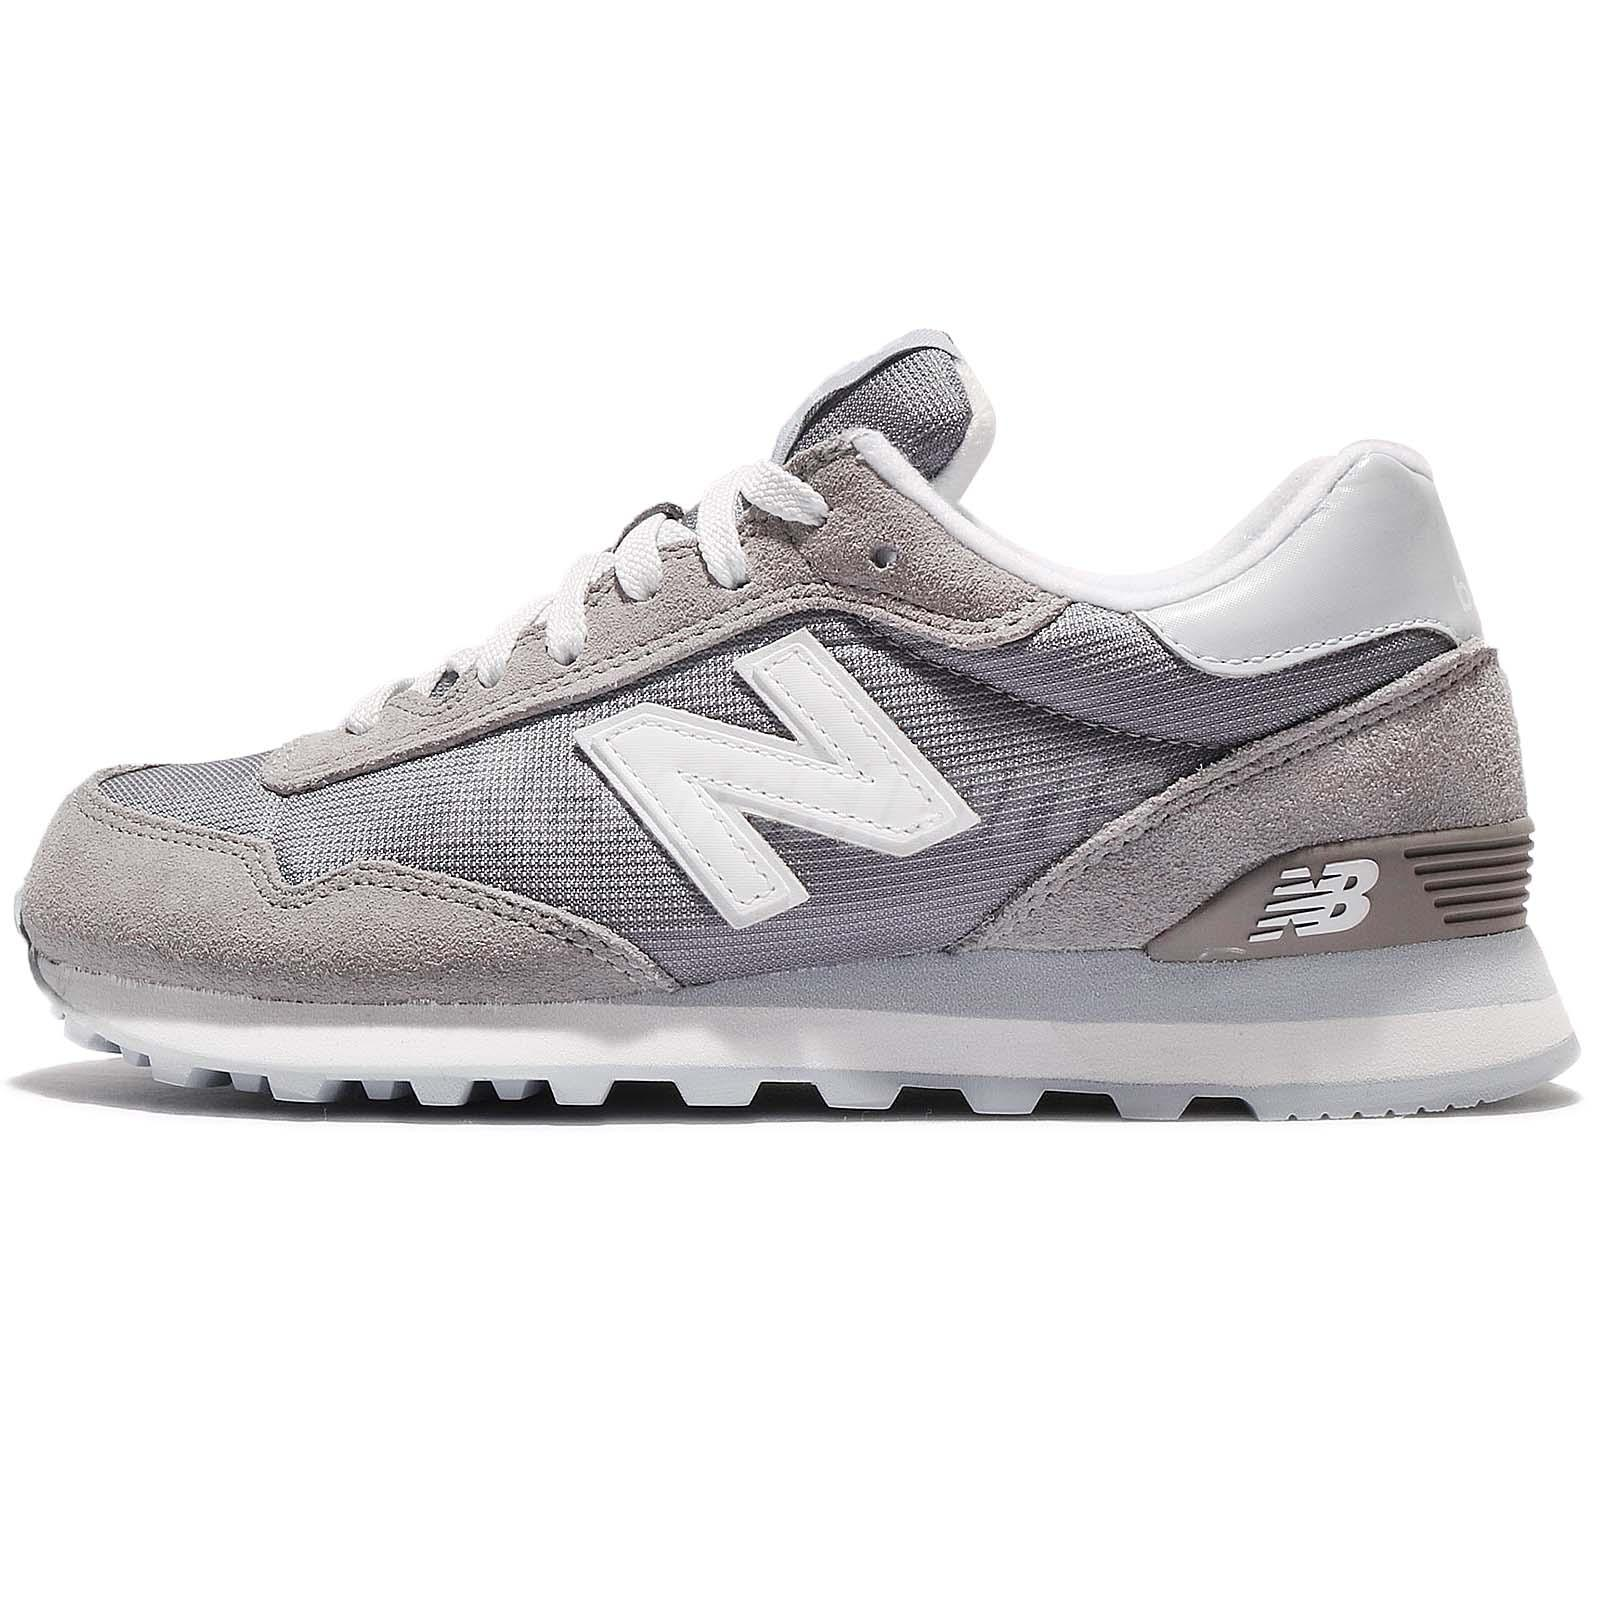 New Balance WL515IFC B Suede Grey White Women Running Shoes Sneakers  WL515IFCB 295ccee400ce8